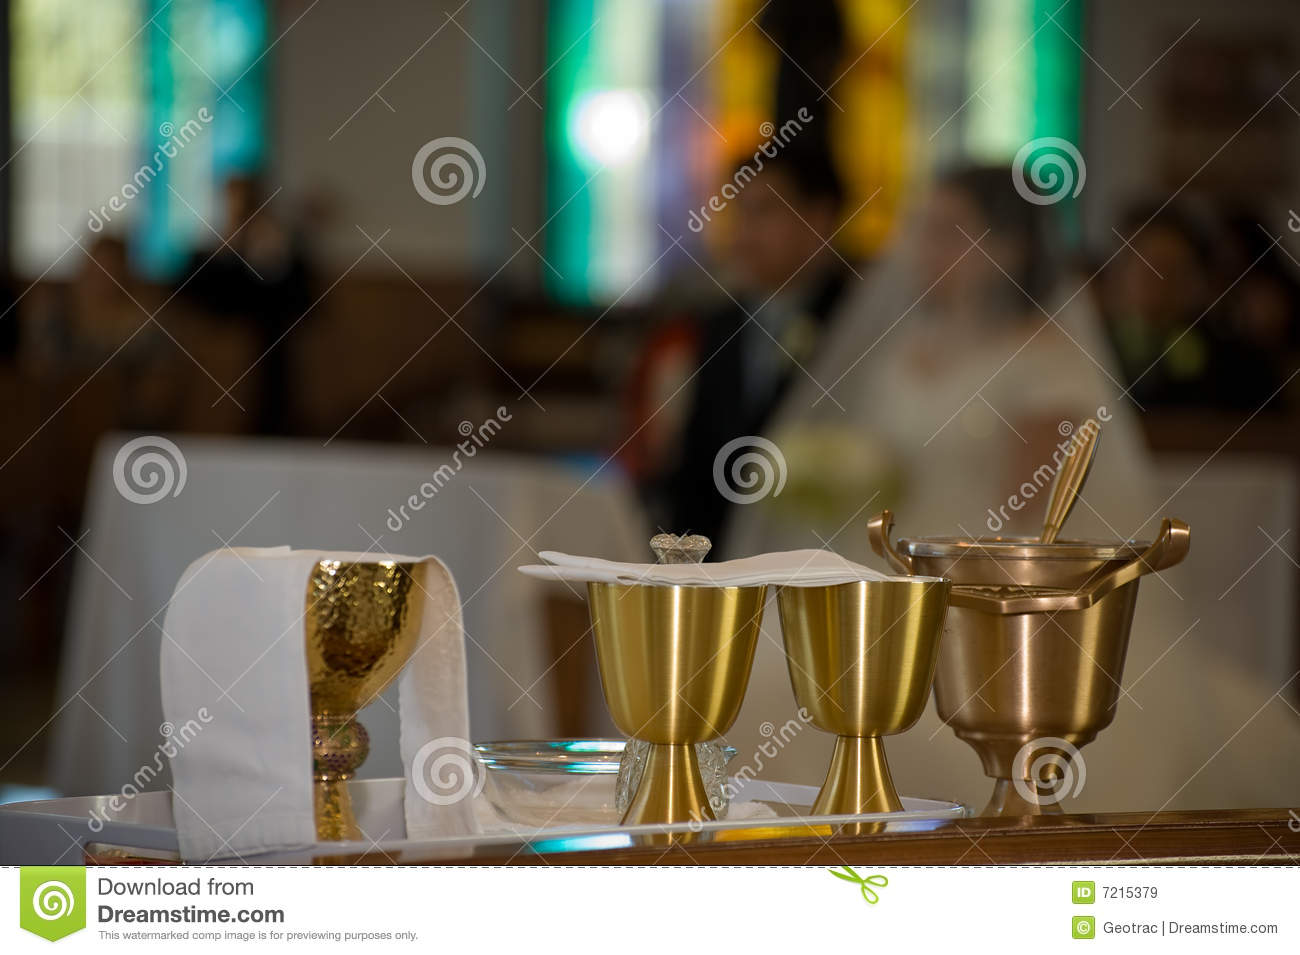 Marriage ceremony royalty free stock images image 7215379 for Holy grail farcical aquatic ceremony